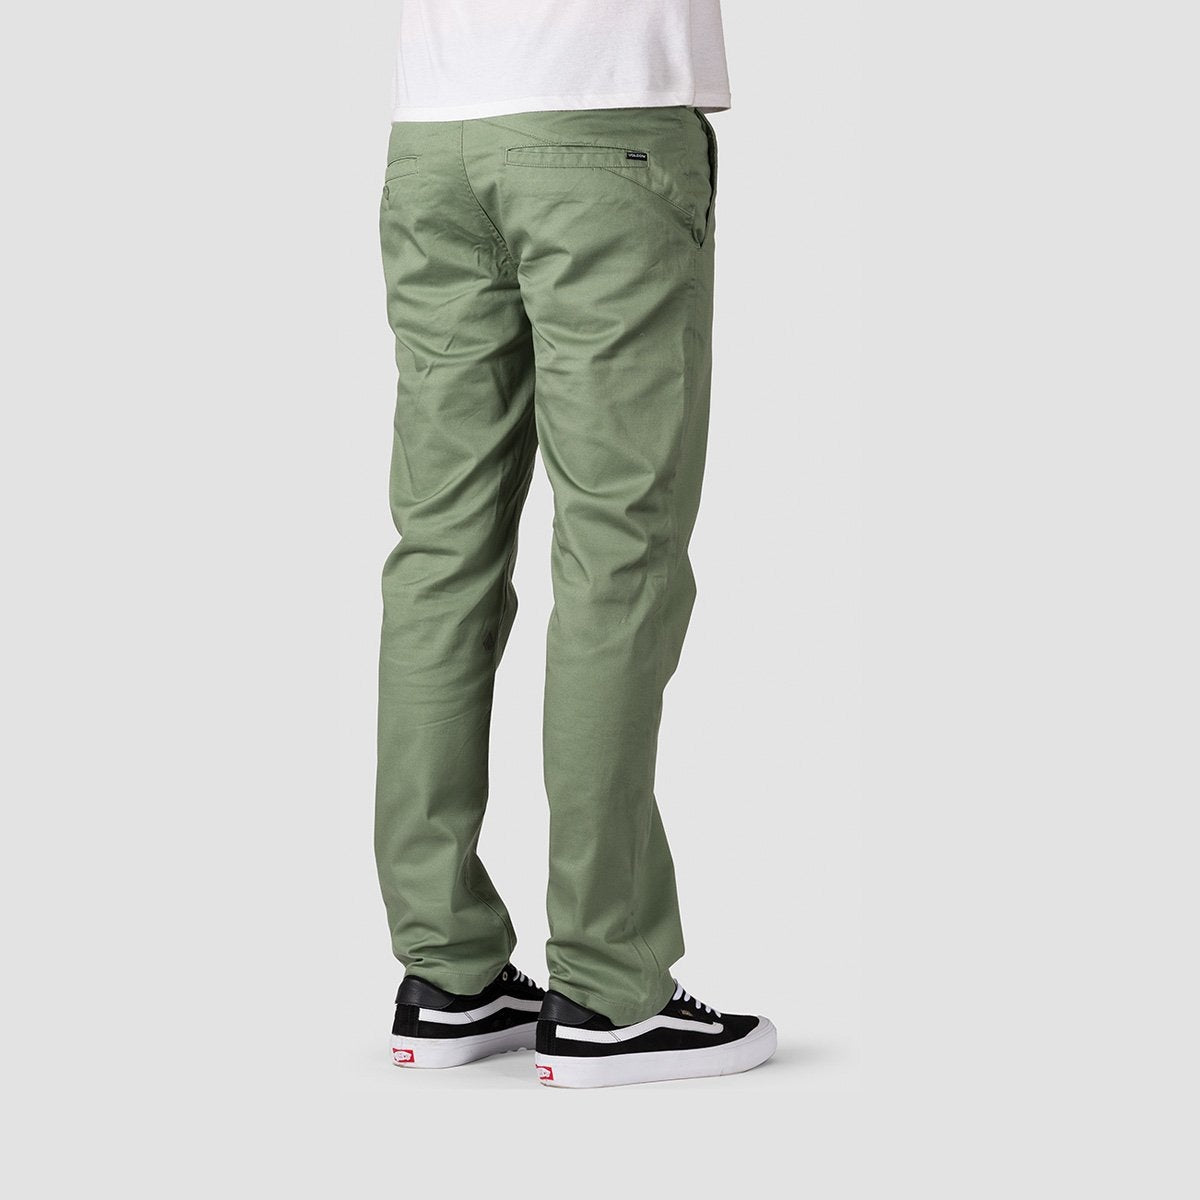 Volcom Frickin Modern Stretch Chino Pants Faded Army - Clothing